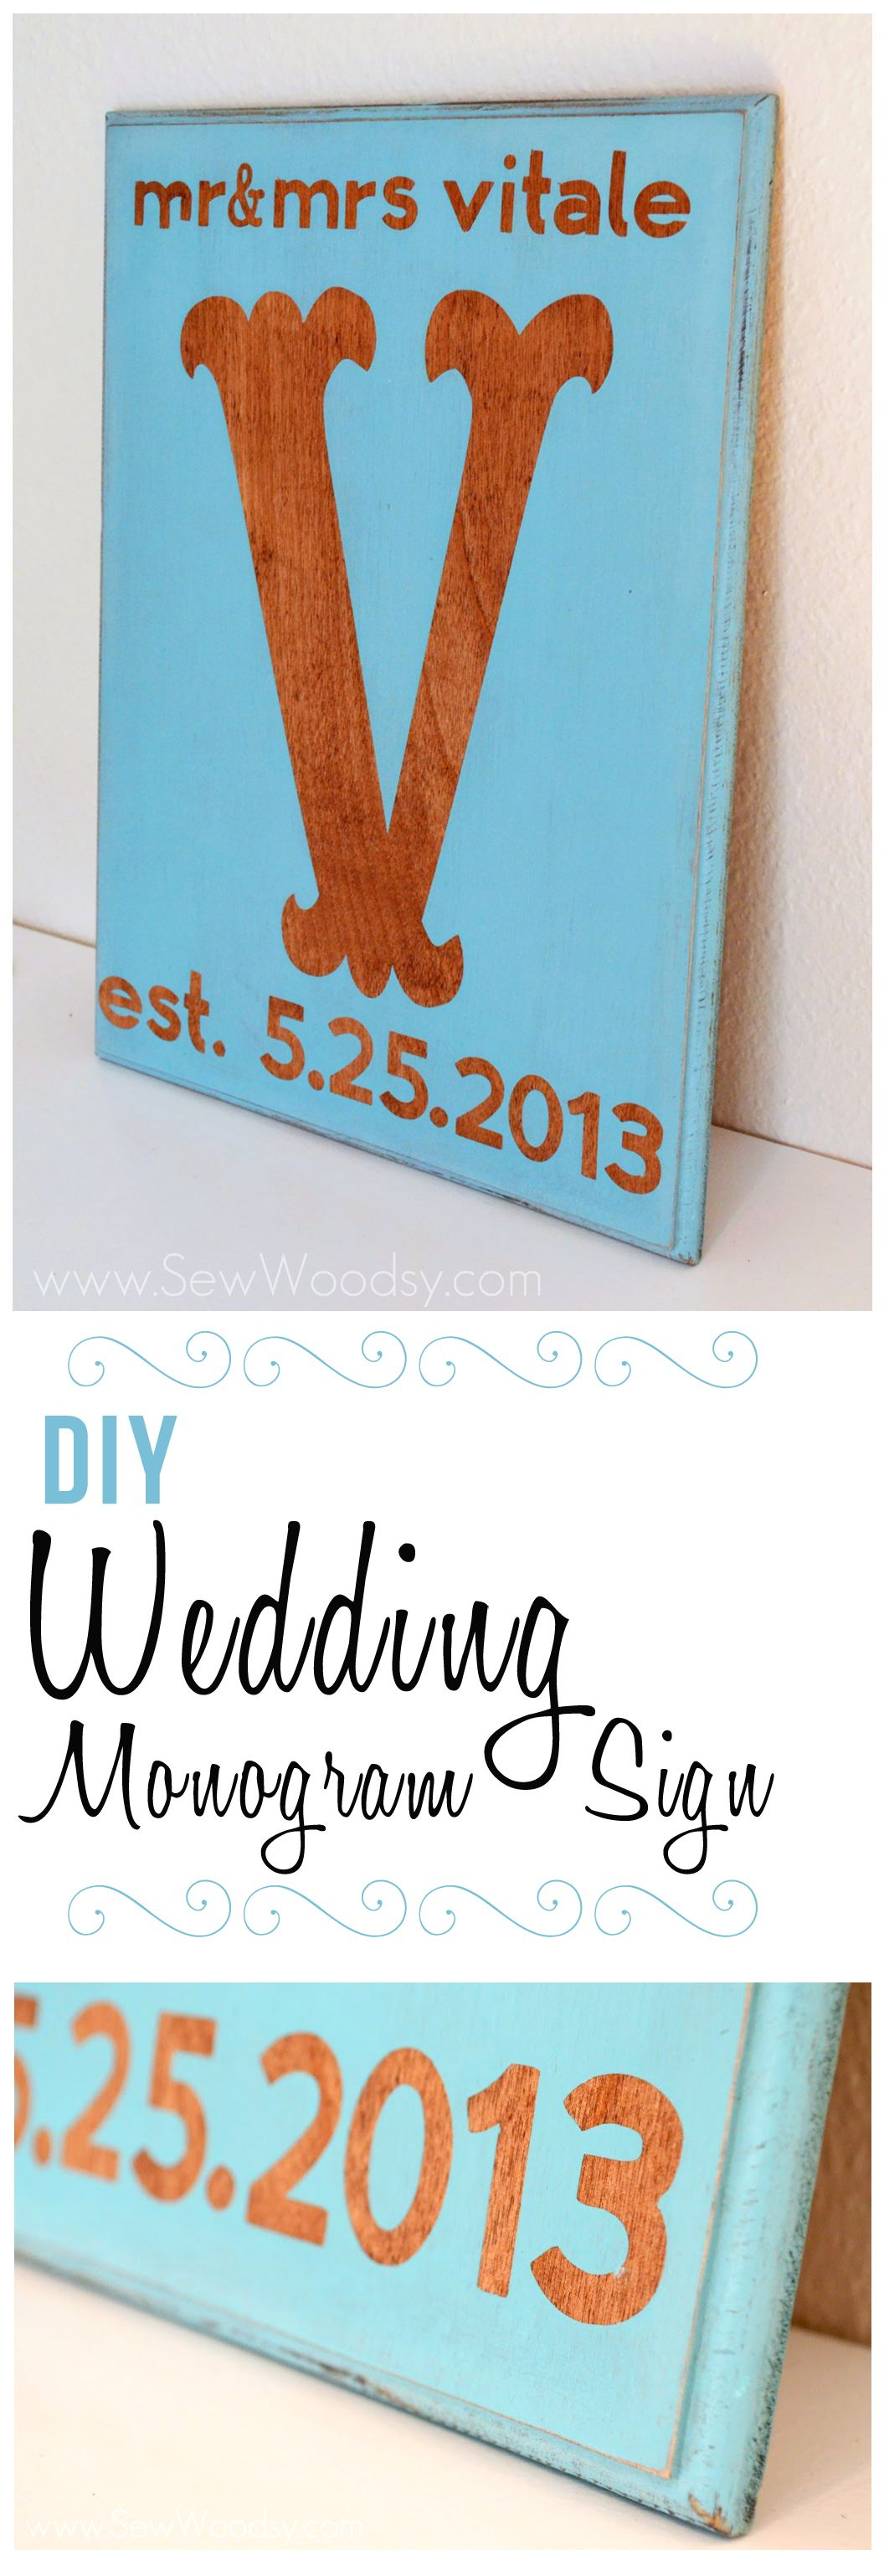 Two Months Ago We Attended The Wedding Of Our Good Friend From High School Day His Decided To Make Them A DIY Monogram Sign